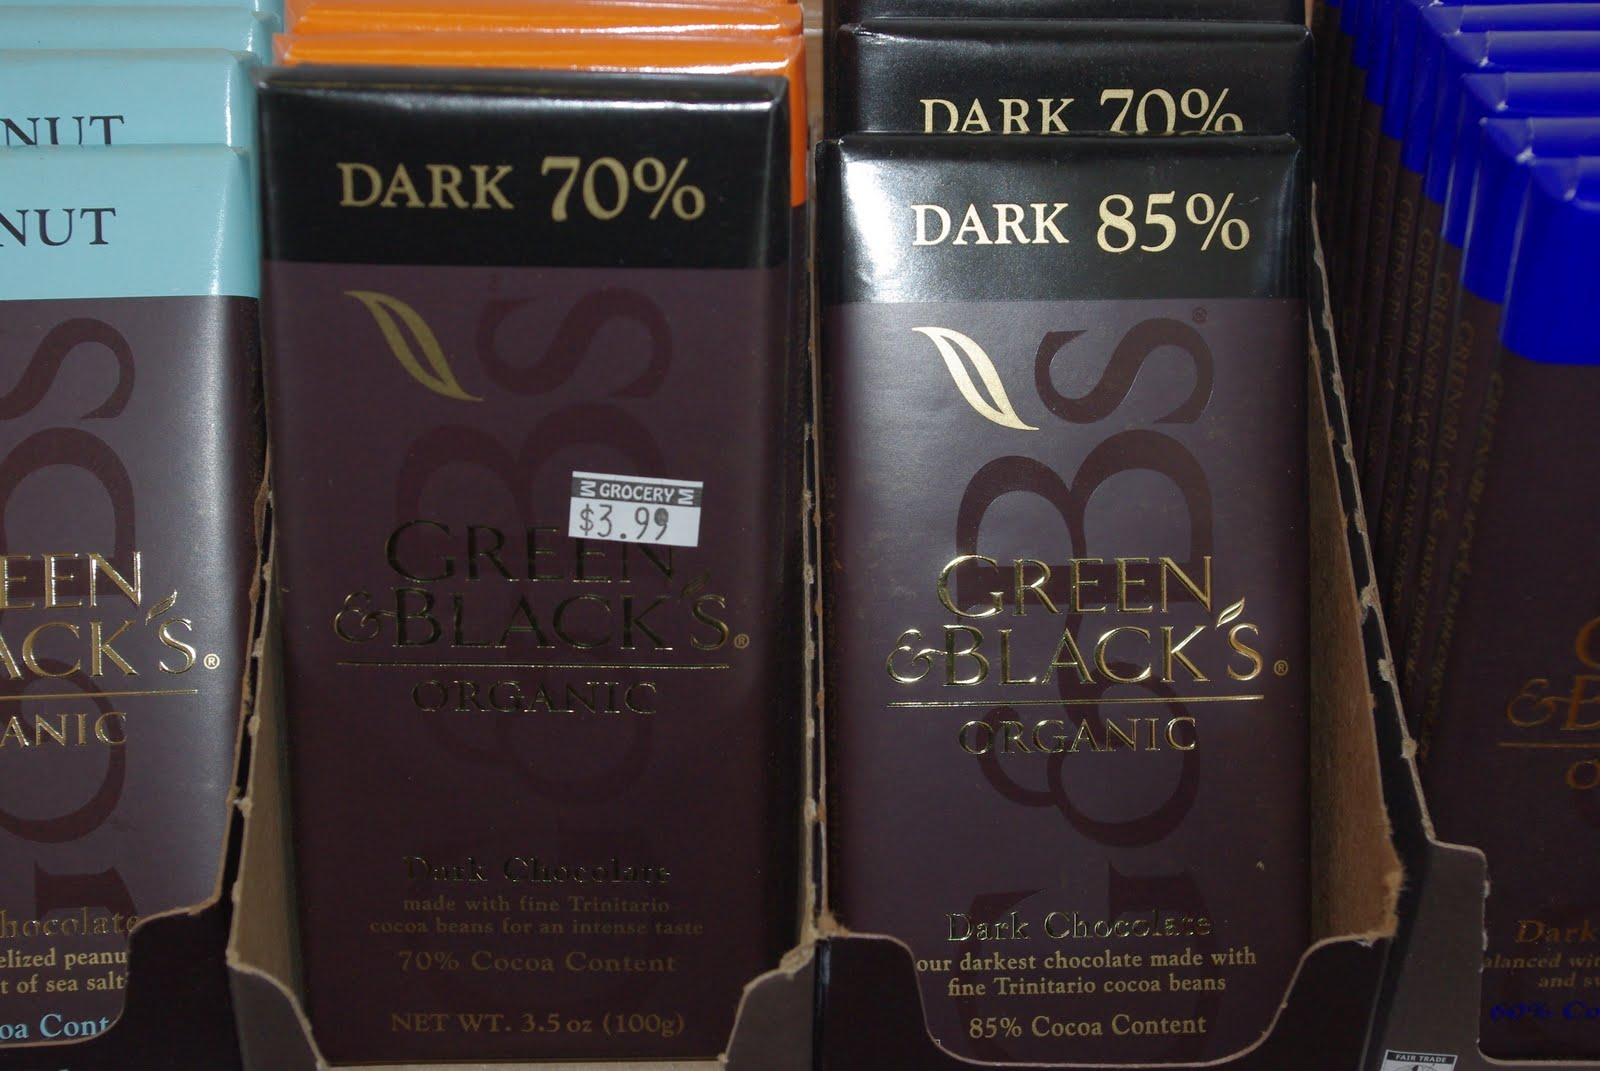 Chezsven Blog: Wellfleet Today: Dark Chocolate, Anyone?